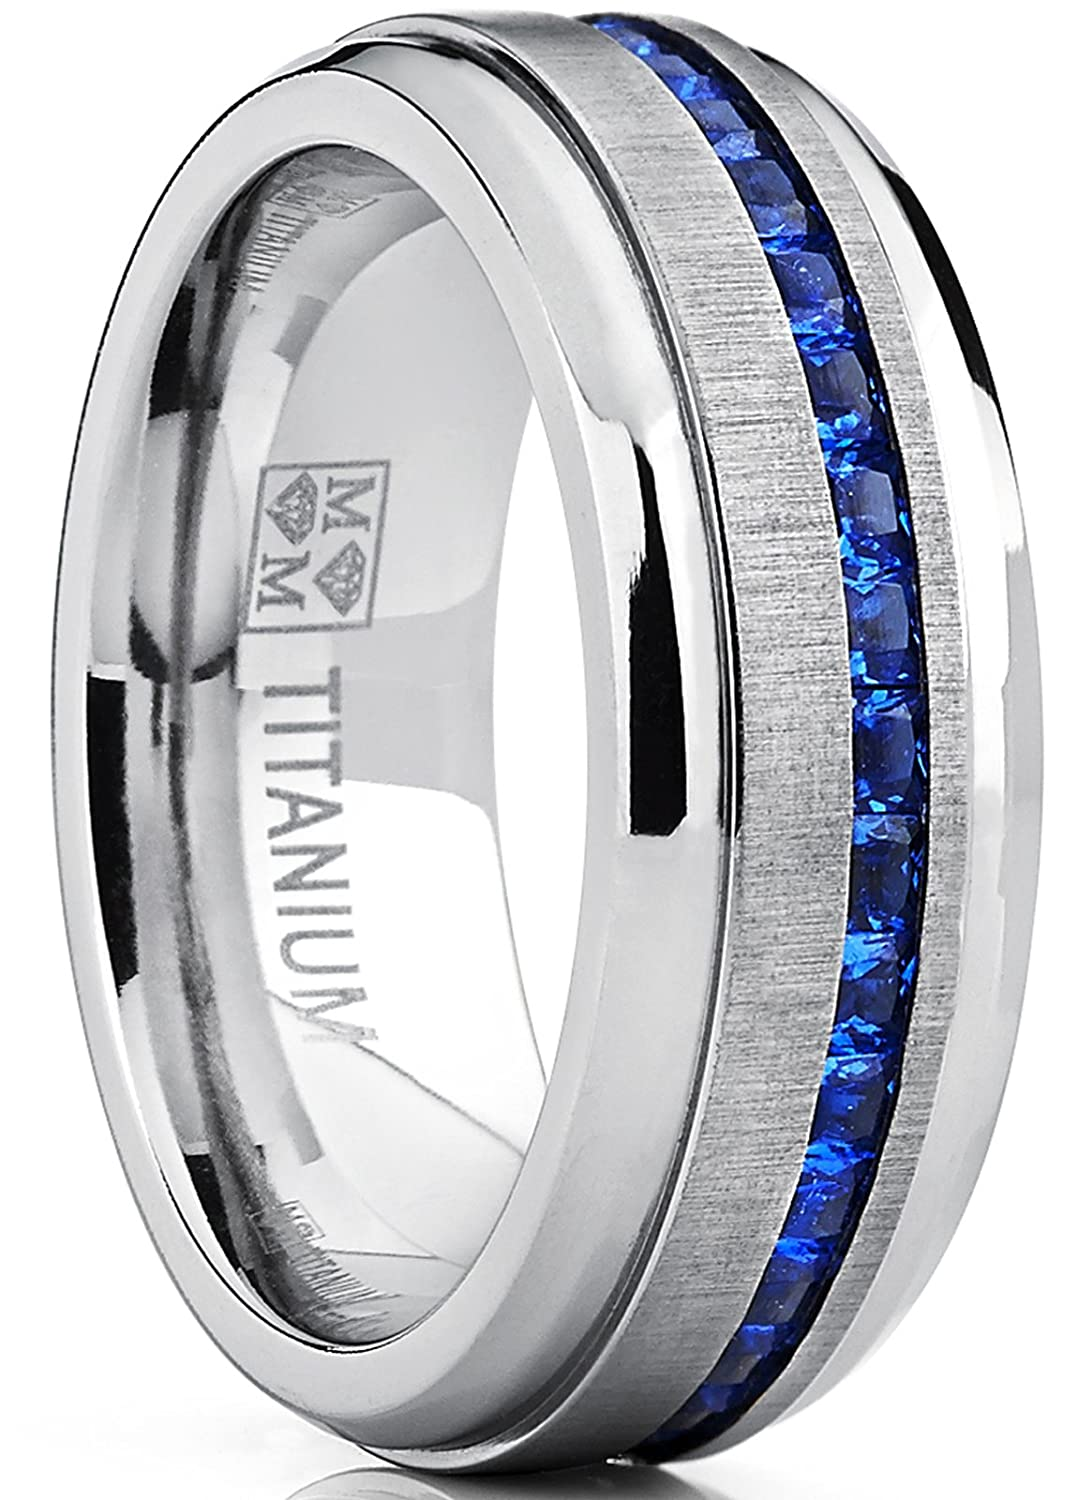 Metal Masters Co. Men's Eternity Titanium Wedding Band Engagement Ring W/Blue Simulated Sapphire Cubic Zirconia Princess CZ TIR-1243